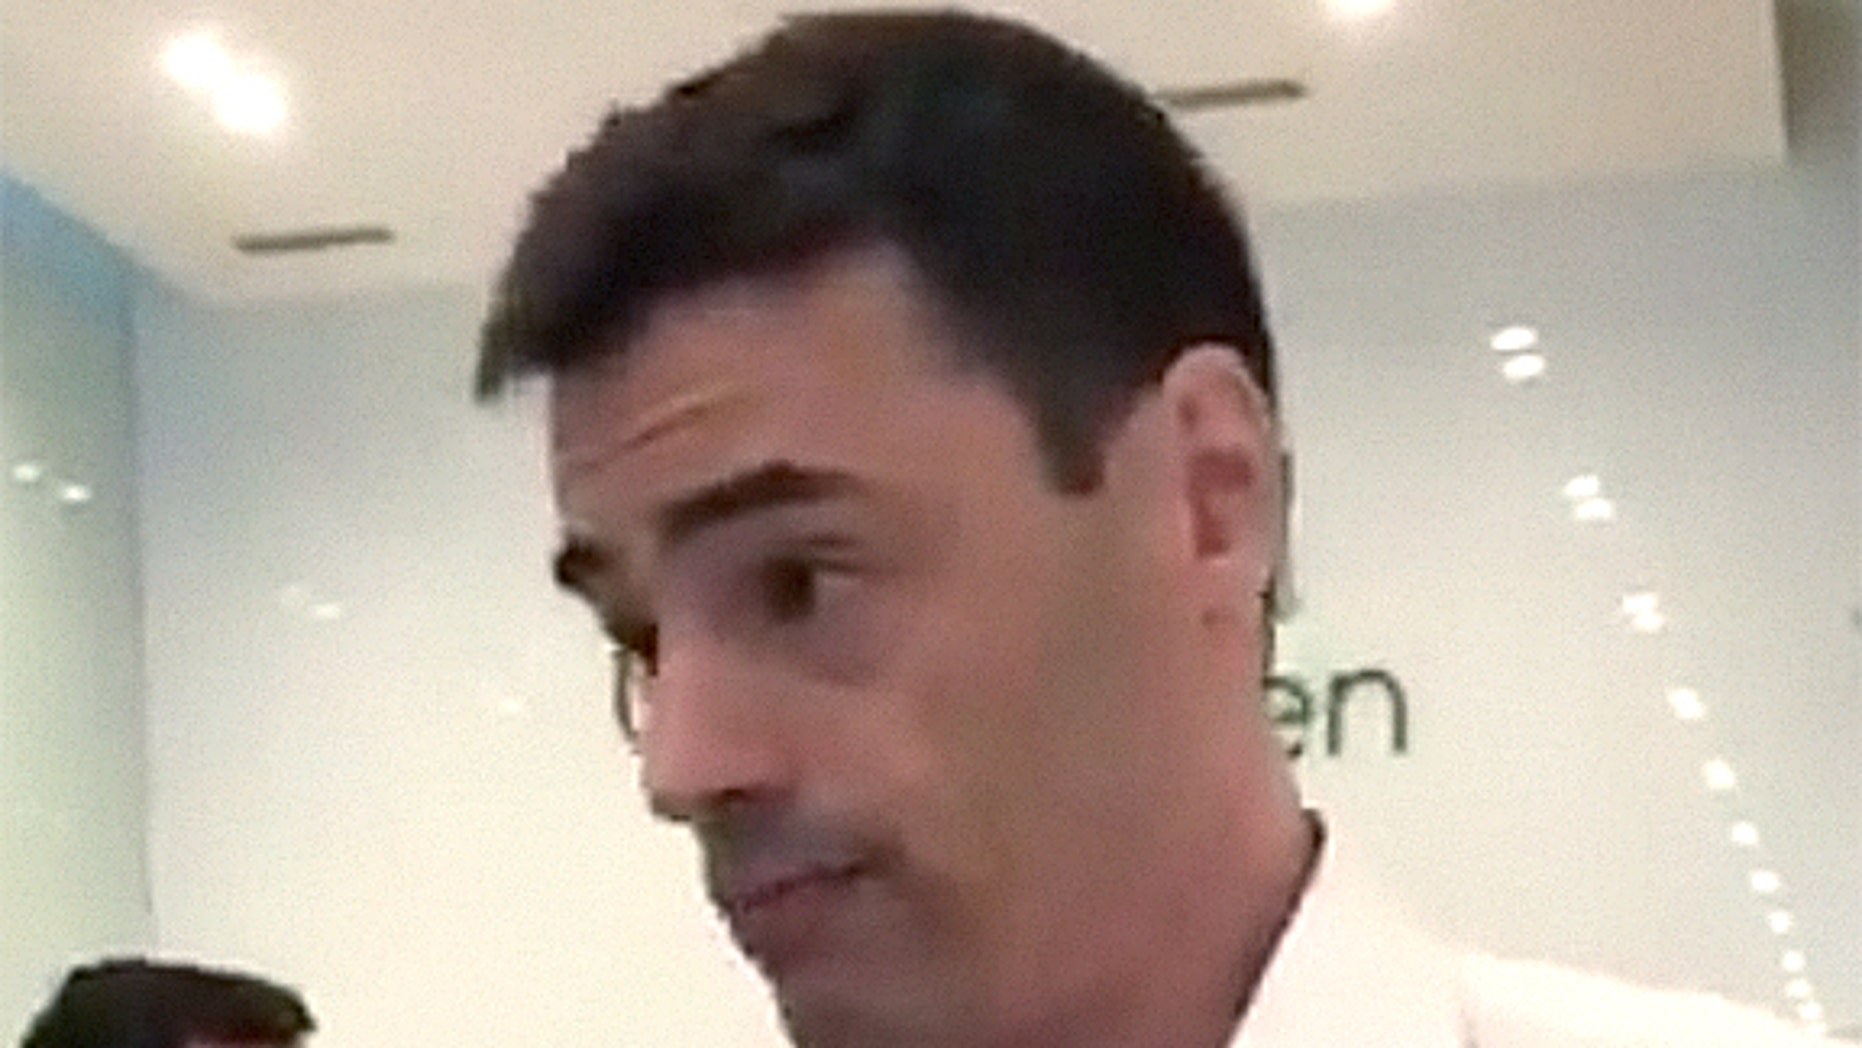 Last week Manhattan lawyer Aaron Schlossberg was caught on video berating employees at a Midtown sandwich place for speaking Spanish.